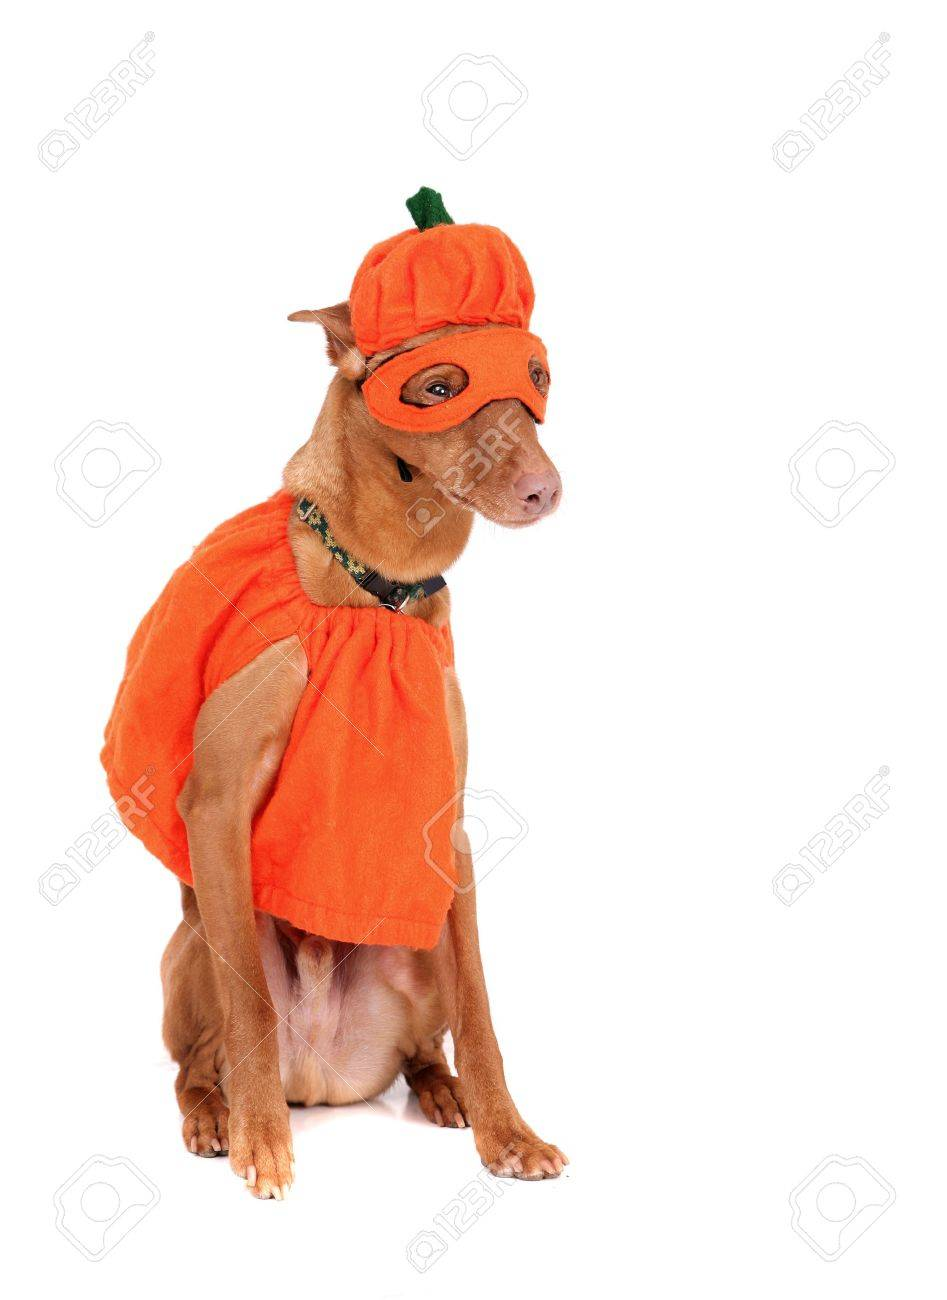 one reddish miniature doberman dressed in a pumpkin costume over white Stock Photo - 4986832  sc 1 st  123RF.com & One Reddish Miniature Doberman Dressed In A Pumpkin Costume Over ...